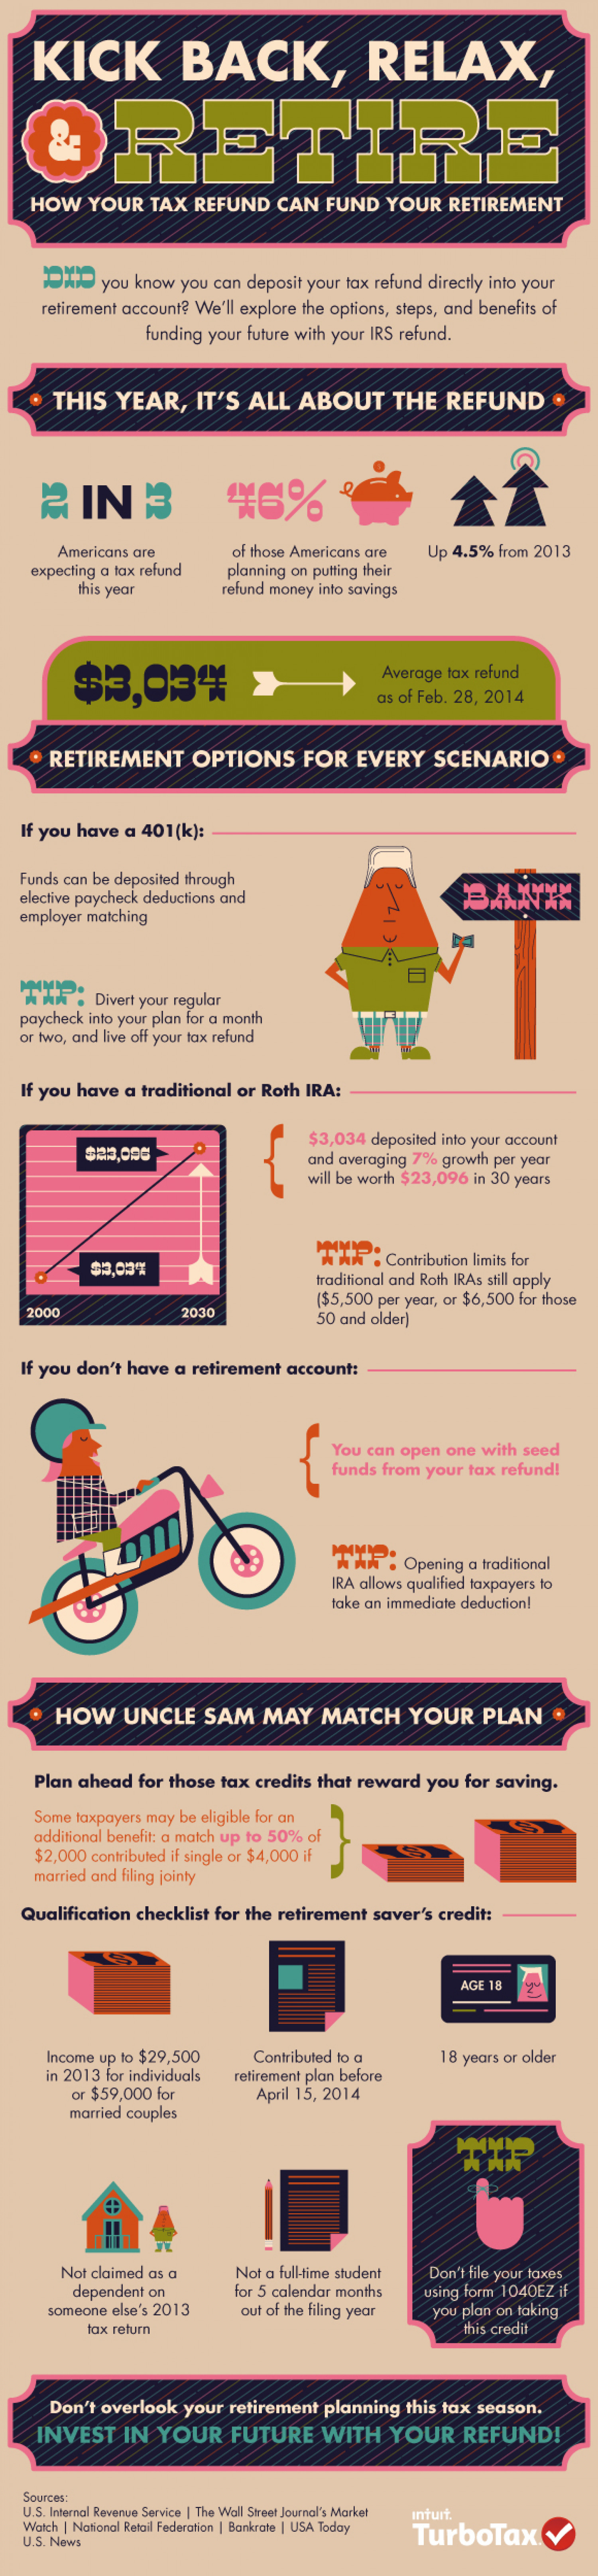 Kick Back, Relax, & Retire How Your Tax Refund Can Fund Your  Retirement Infographic